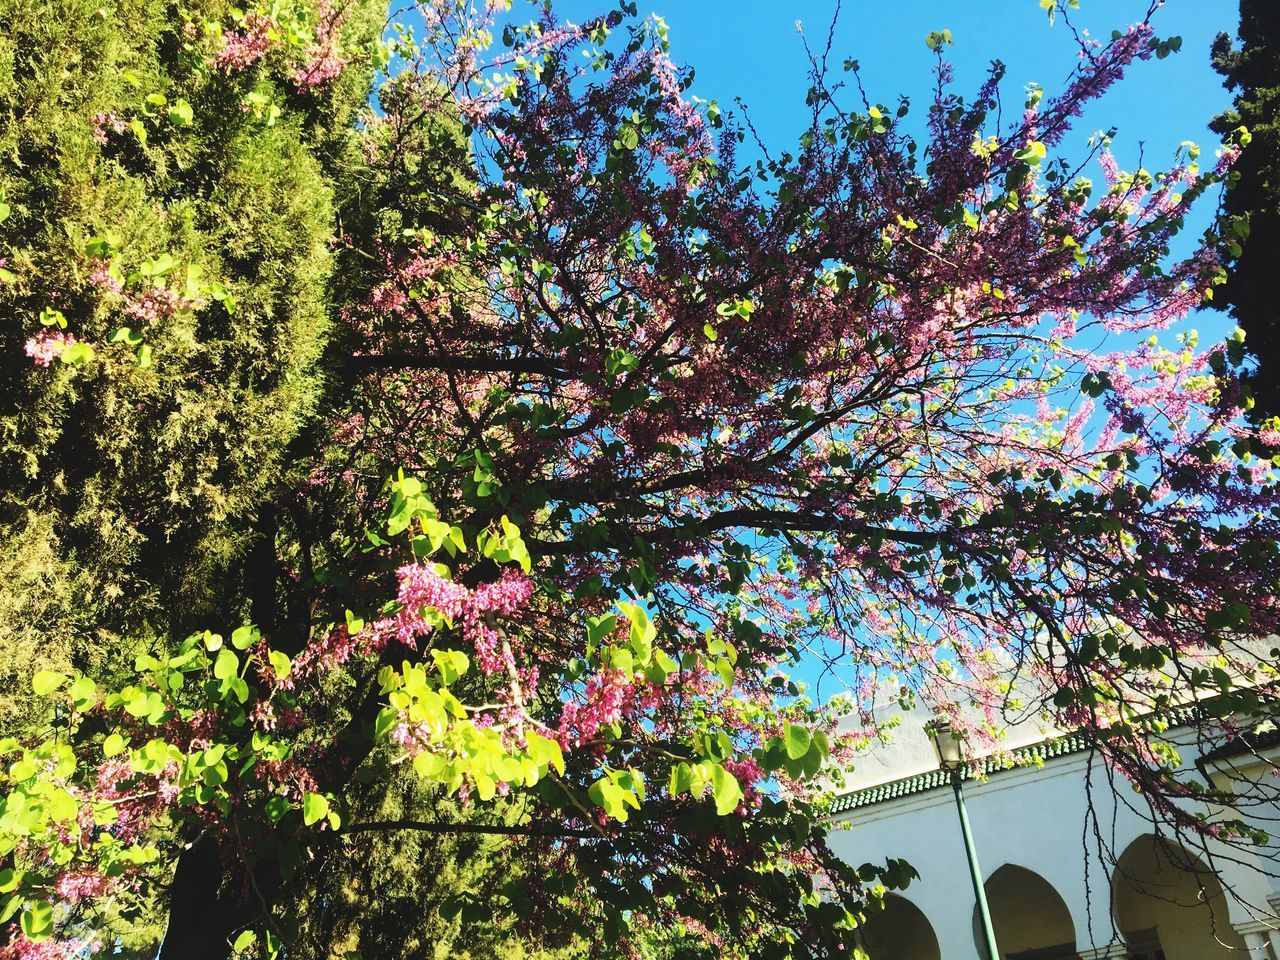 tree, growth, blossom, flower, beauty in nature, nature, branch, low angle view, springtime, botany, day, fragility, freshness, no people, outdoors, architecture, sky